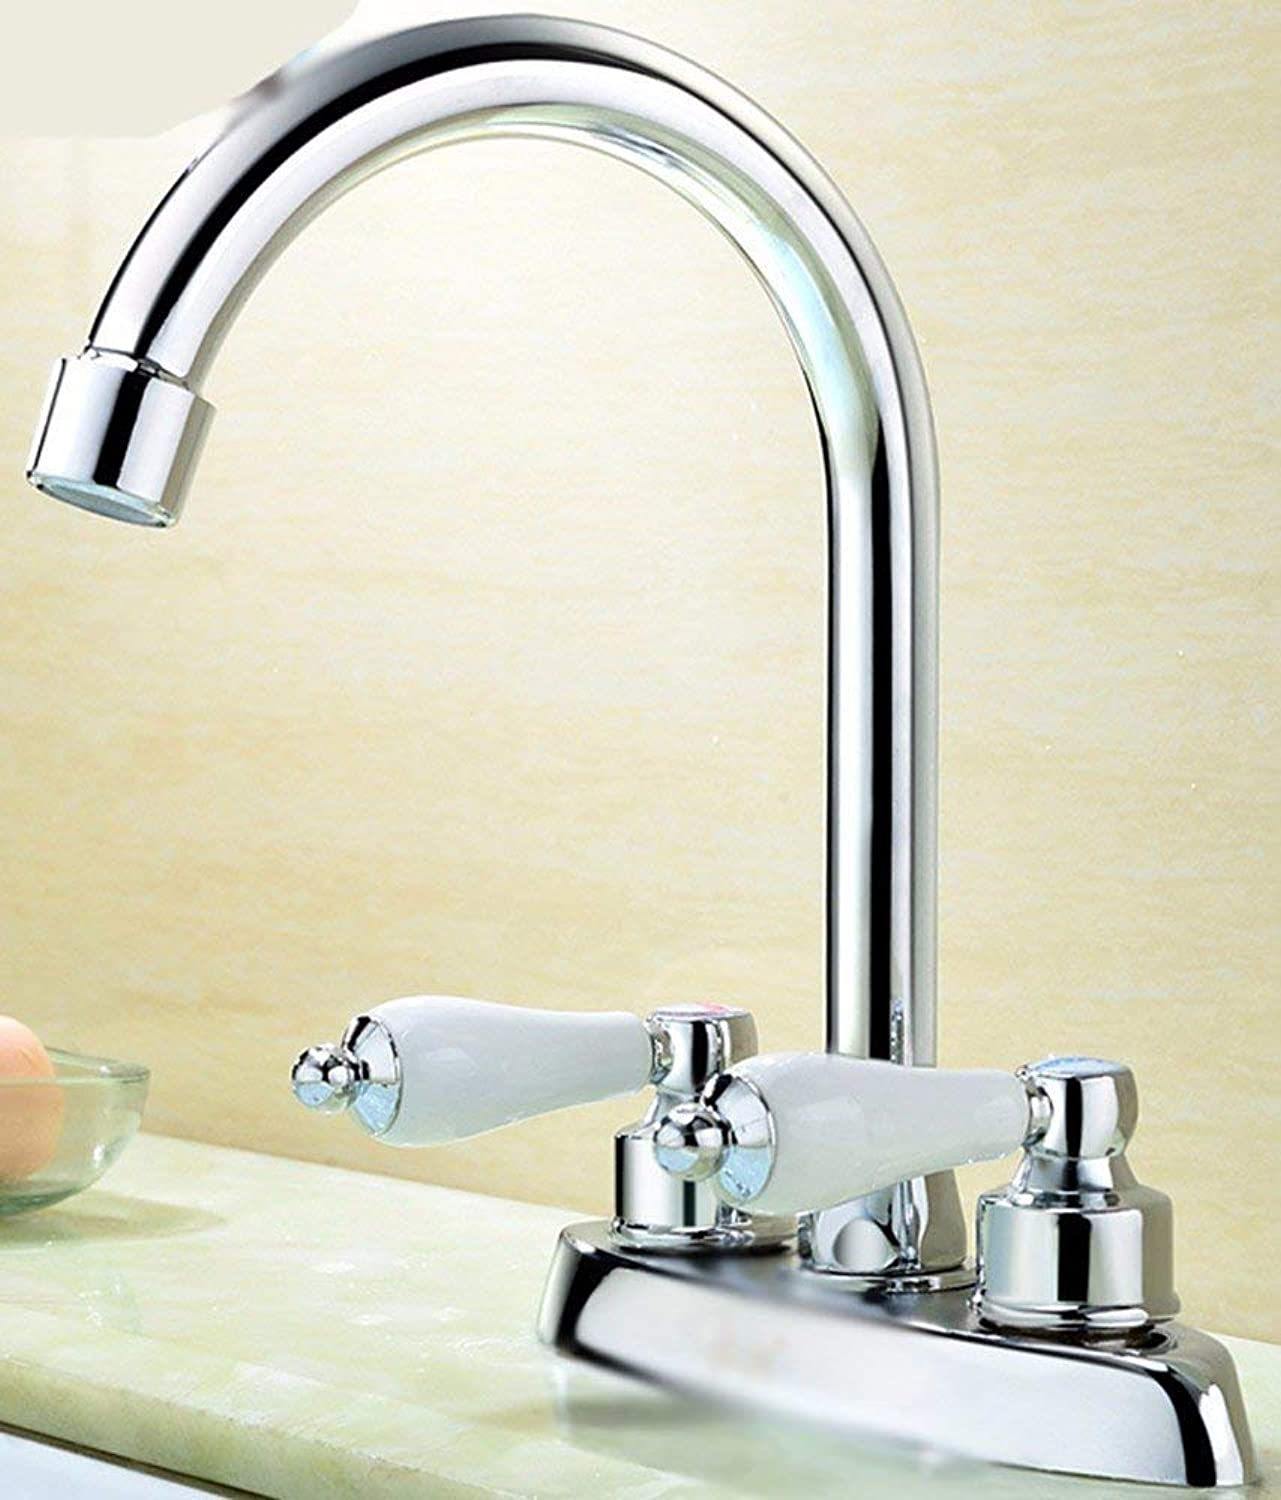 CFHJN HOME European style copper double hot and cold bathroom Washbasin Faucet